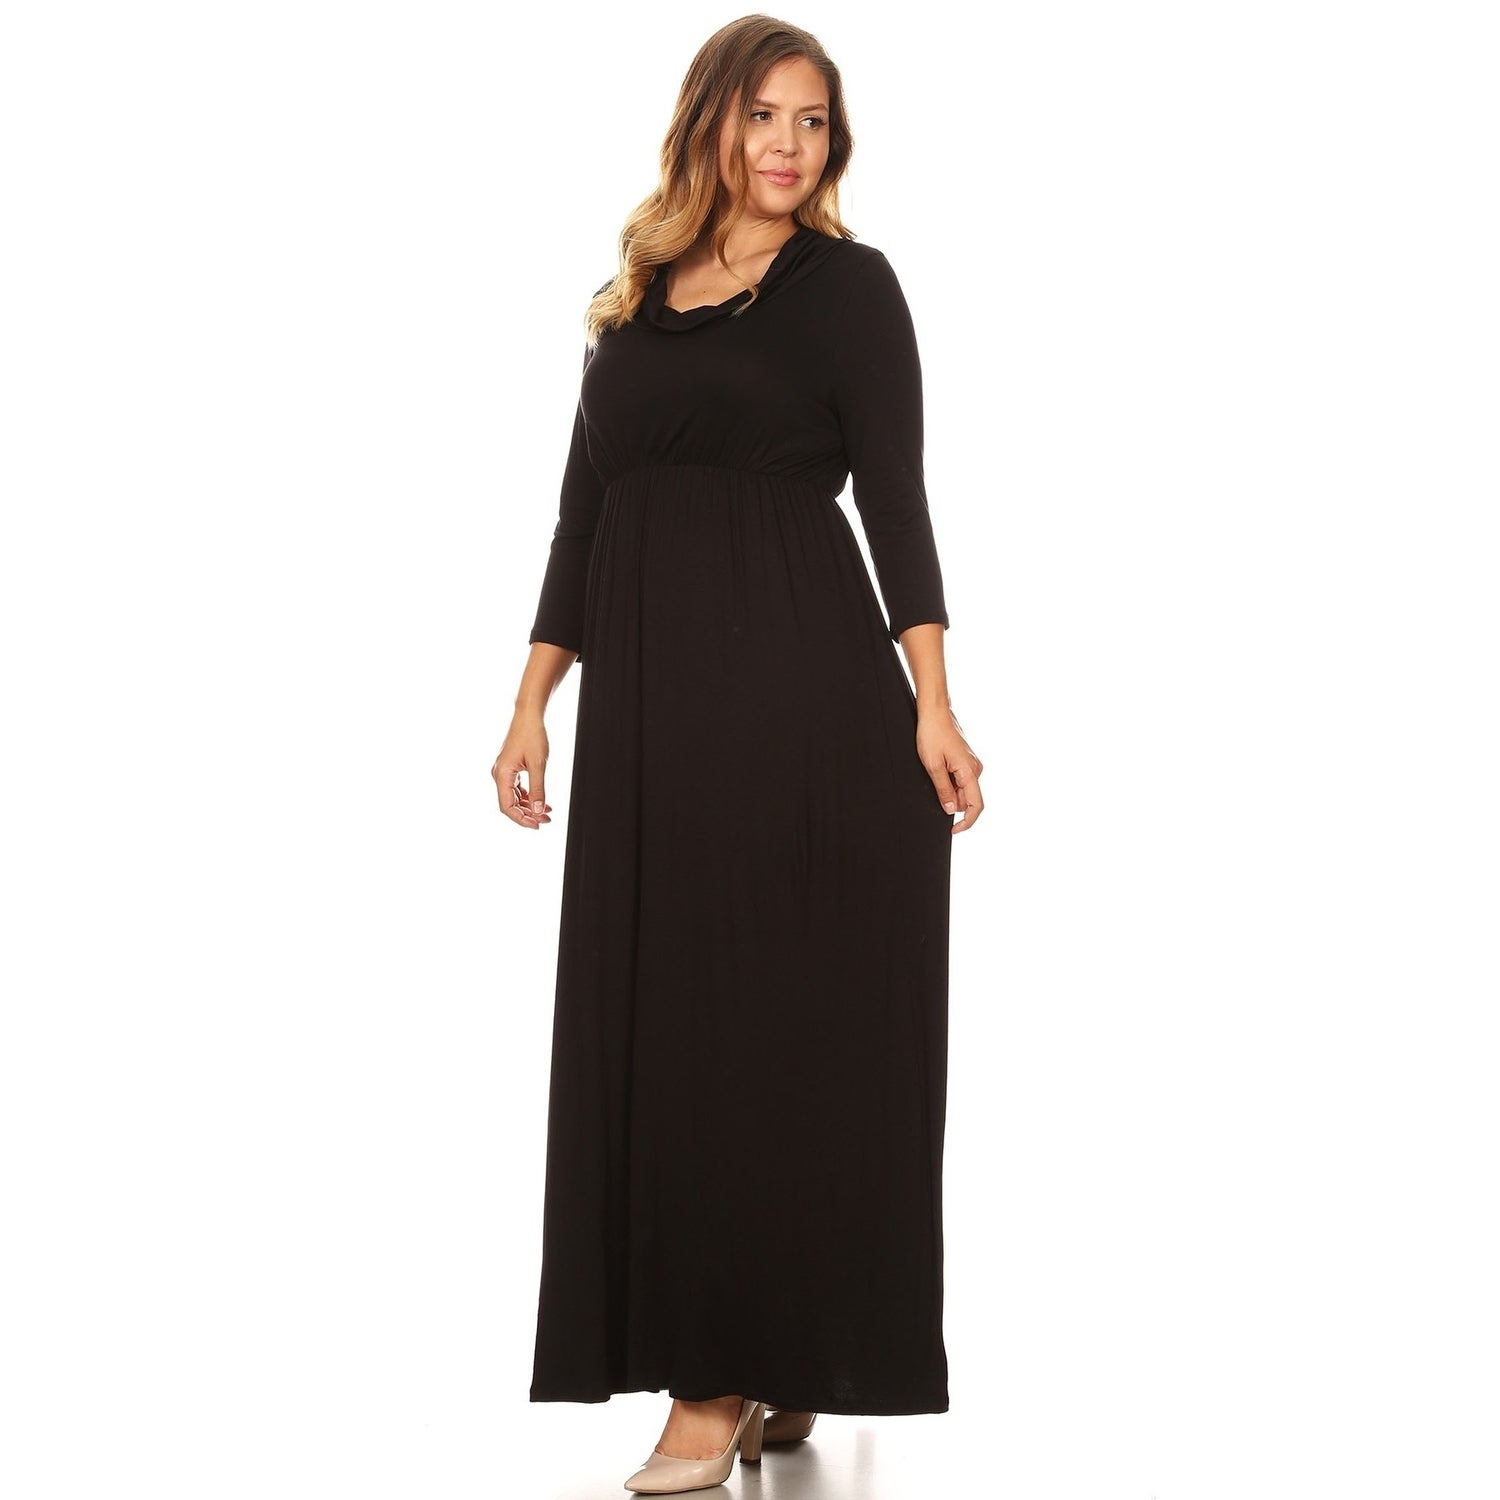 Women\'s Casual Solid Loose Fit Modest Wear Plus Size Pleated Long Maxi Dress